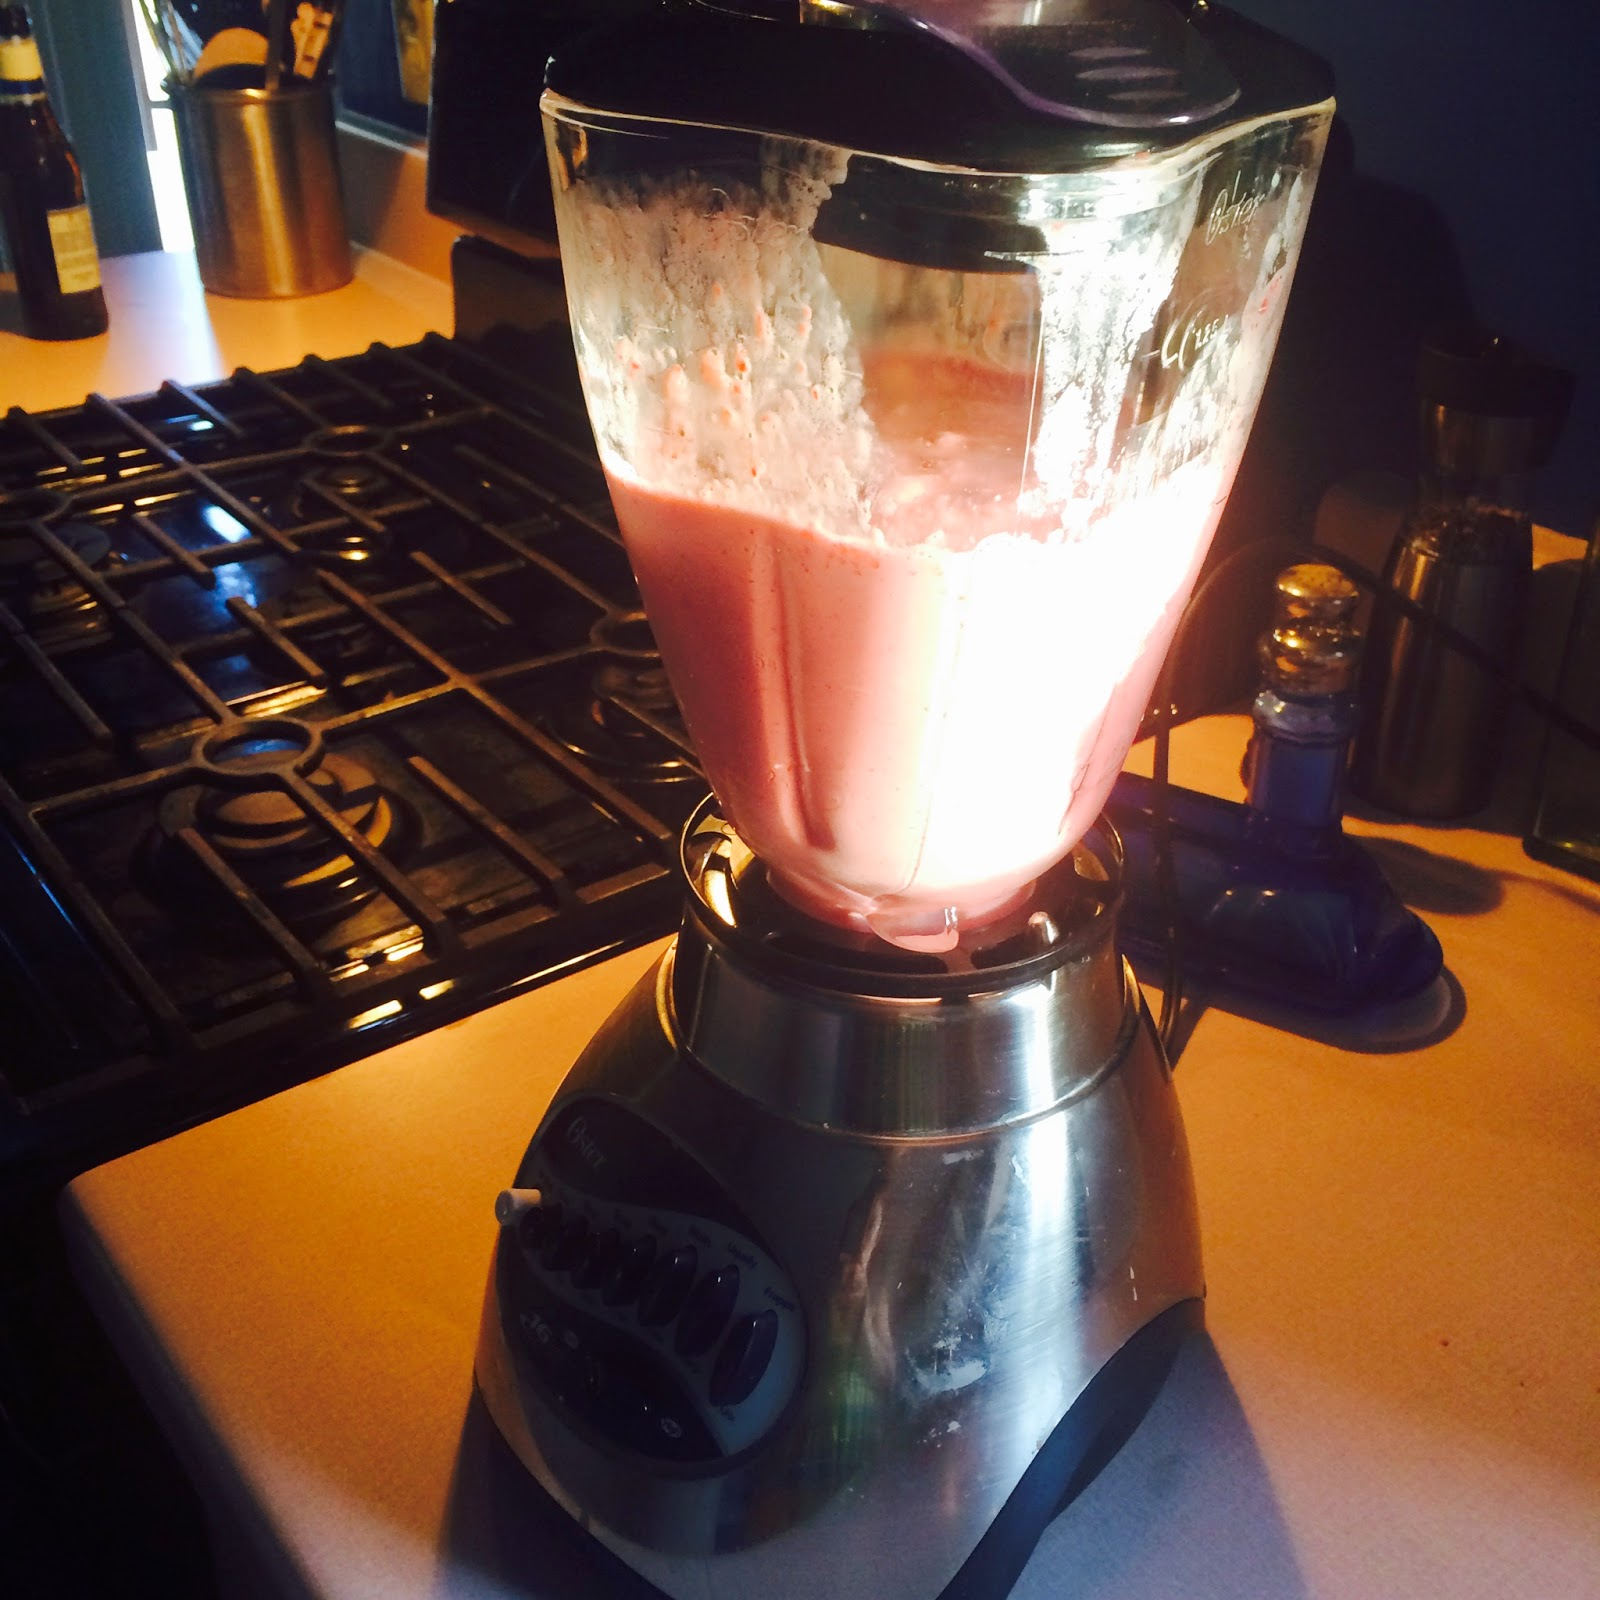 Blend ingredients until the strawberry milkshake is smooth.